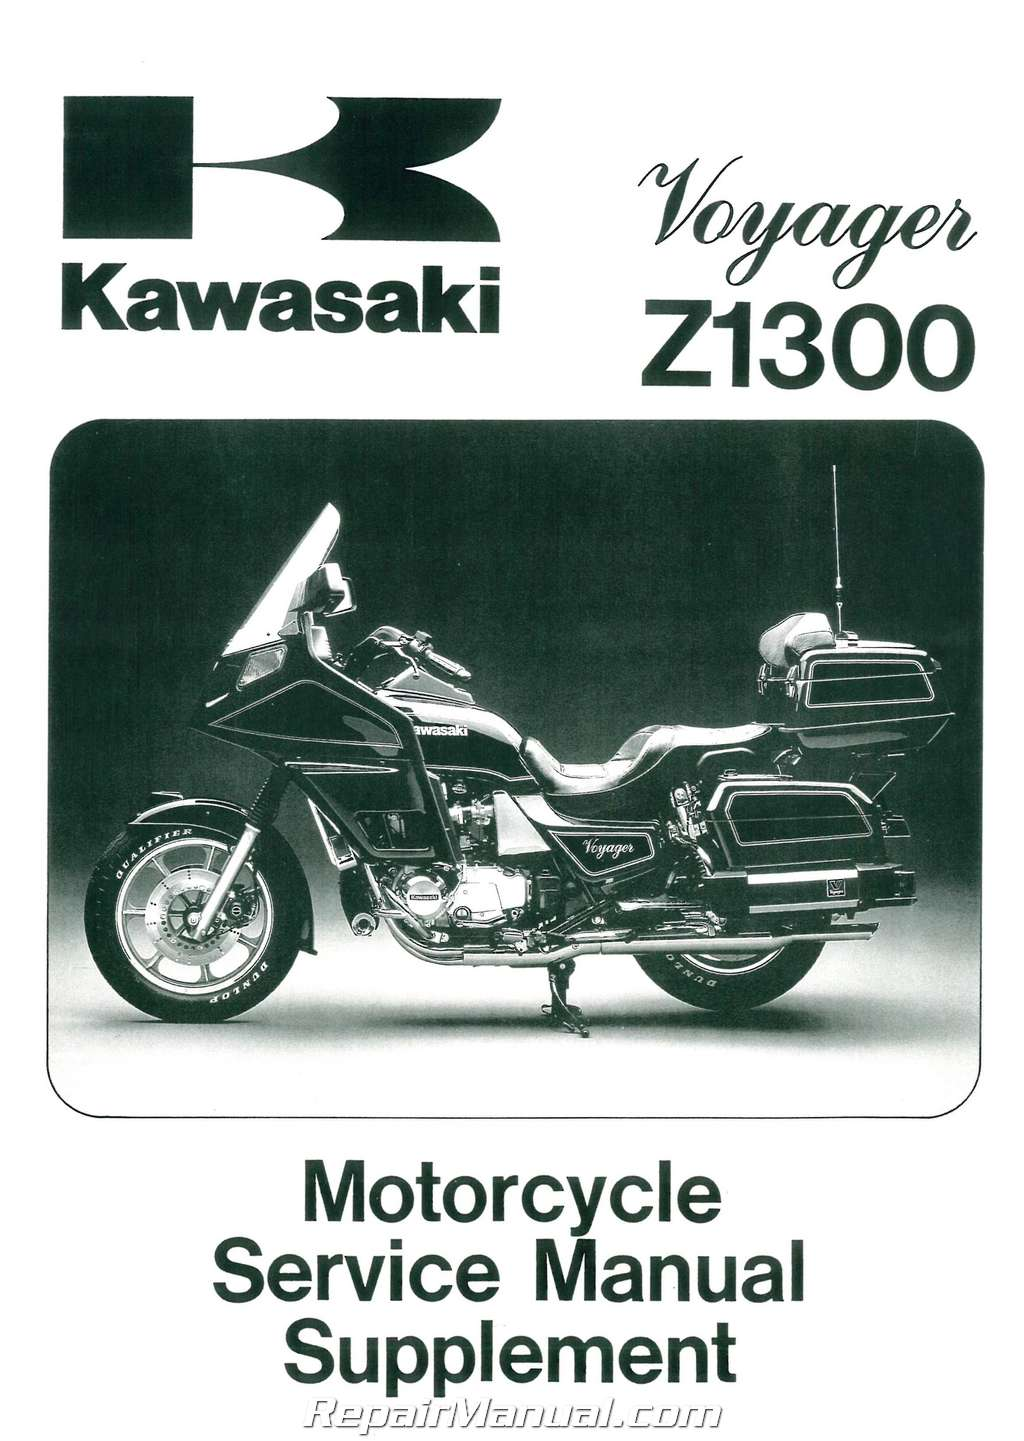 1999 Kawasaki Voyager Owners Manual Pdf Various Owner Guide Xii Wiring Diagram 1983 1989 Zn1300 Motorcycle Service Supplement Rh Repairmanual Com 2004 1990